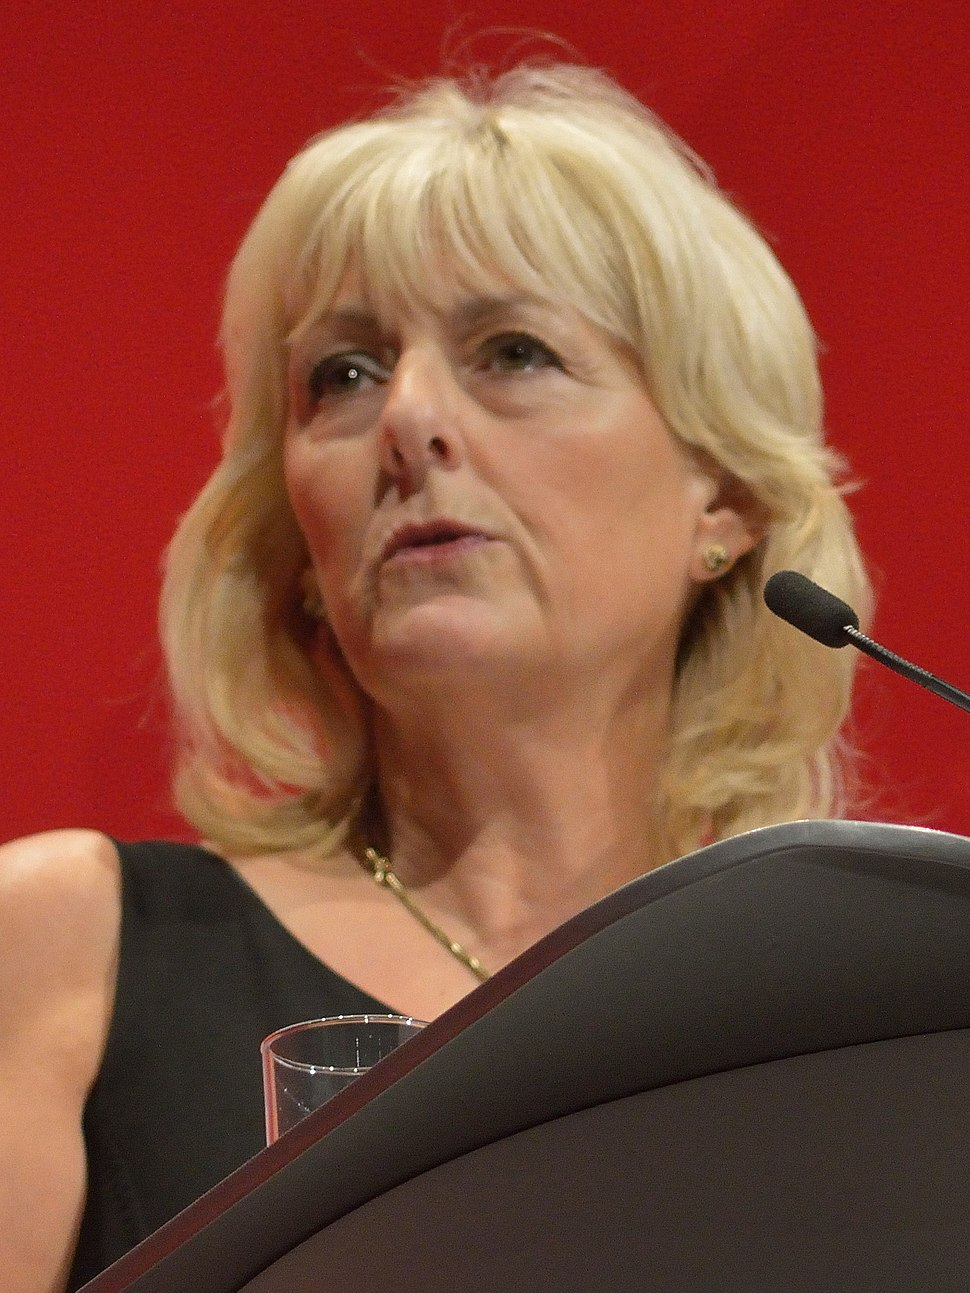 Jennie Formby, 2016 Labour Party Conference (cropped)